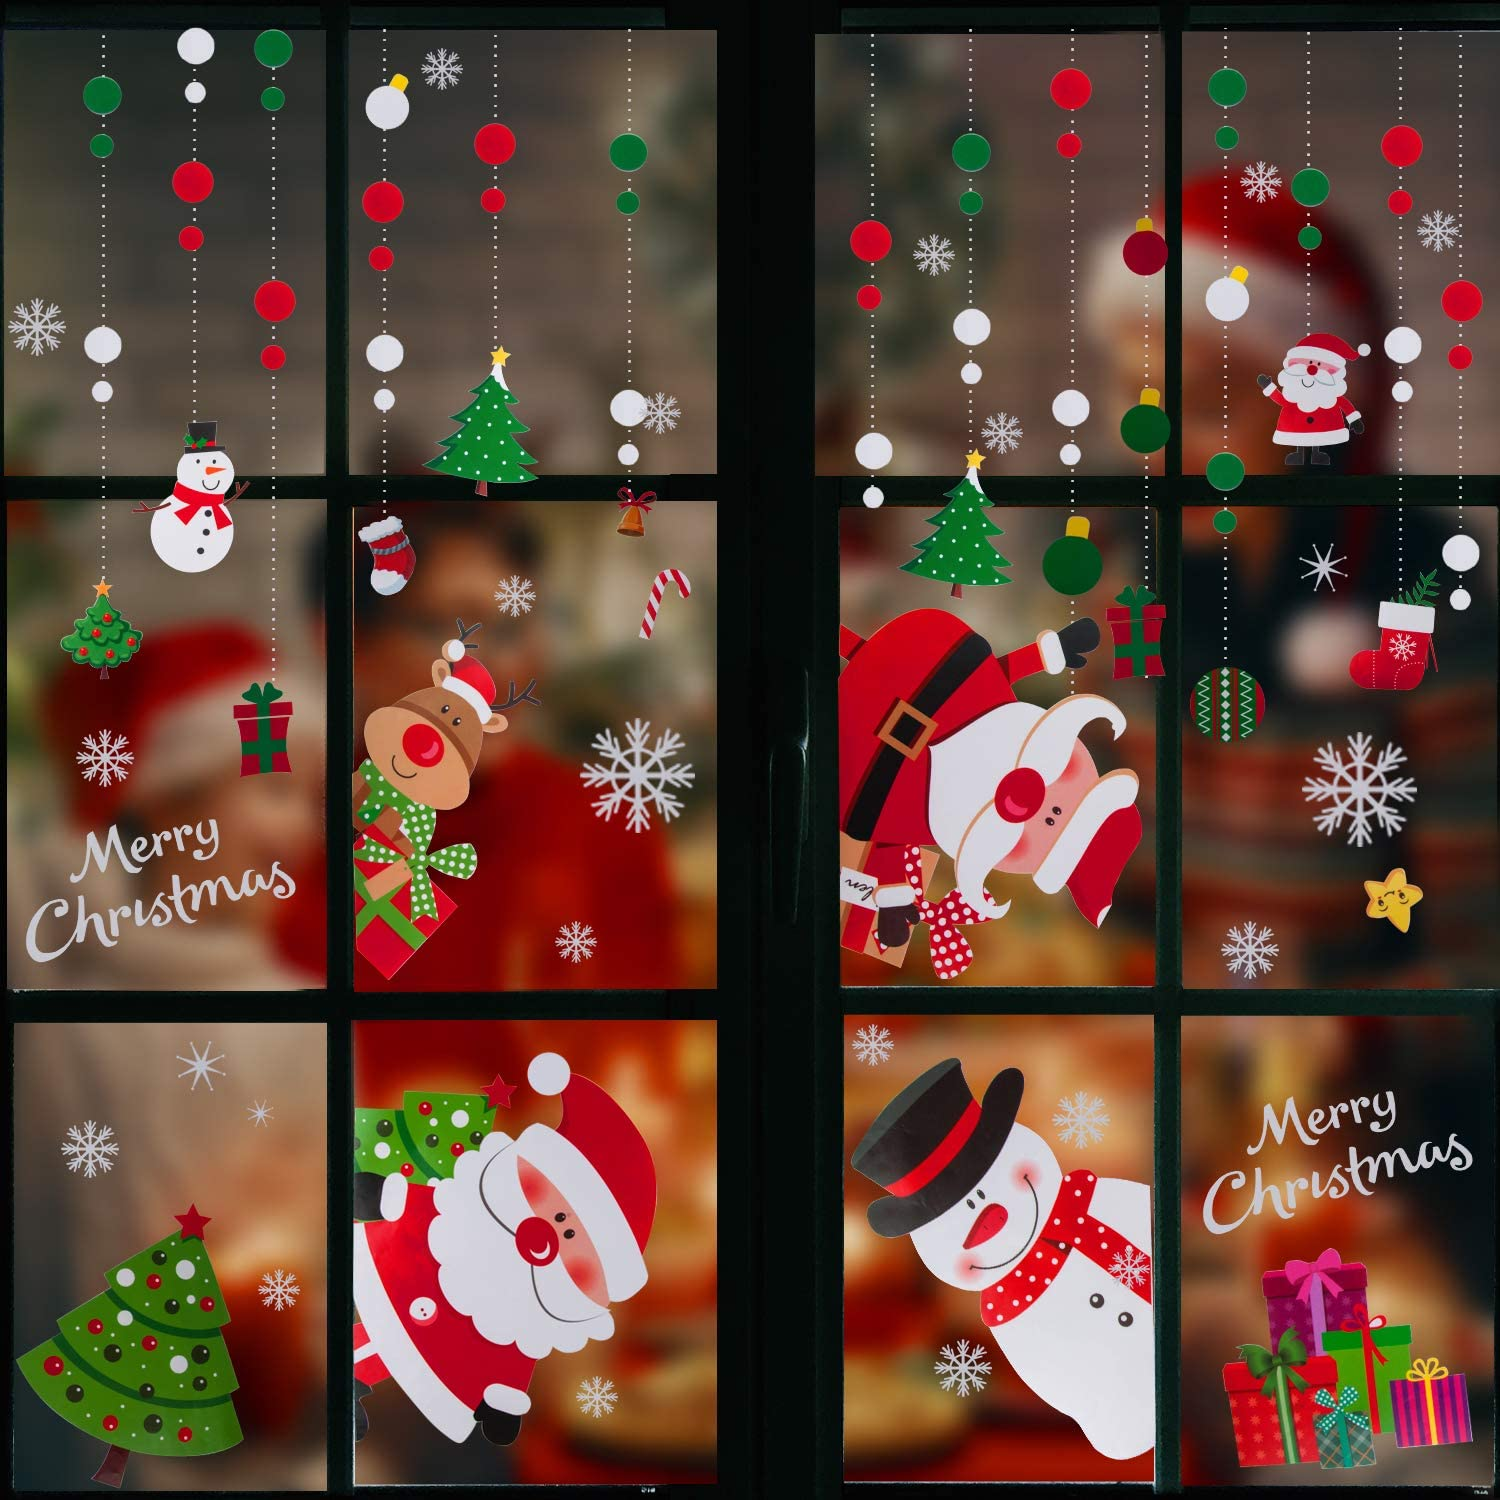 JOYYPOP Christmas Window Clings with Snowman Santa Claus Stickers Reusable Decal Stickers for Christmas Window Decorations 4 Sheets